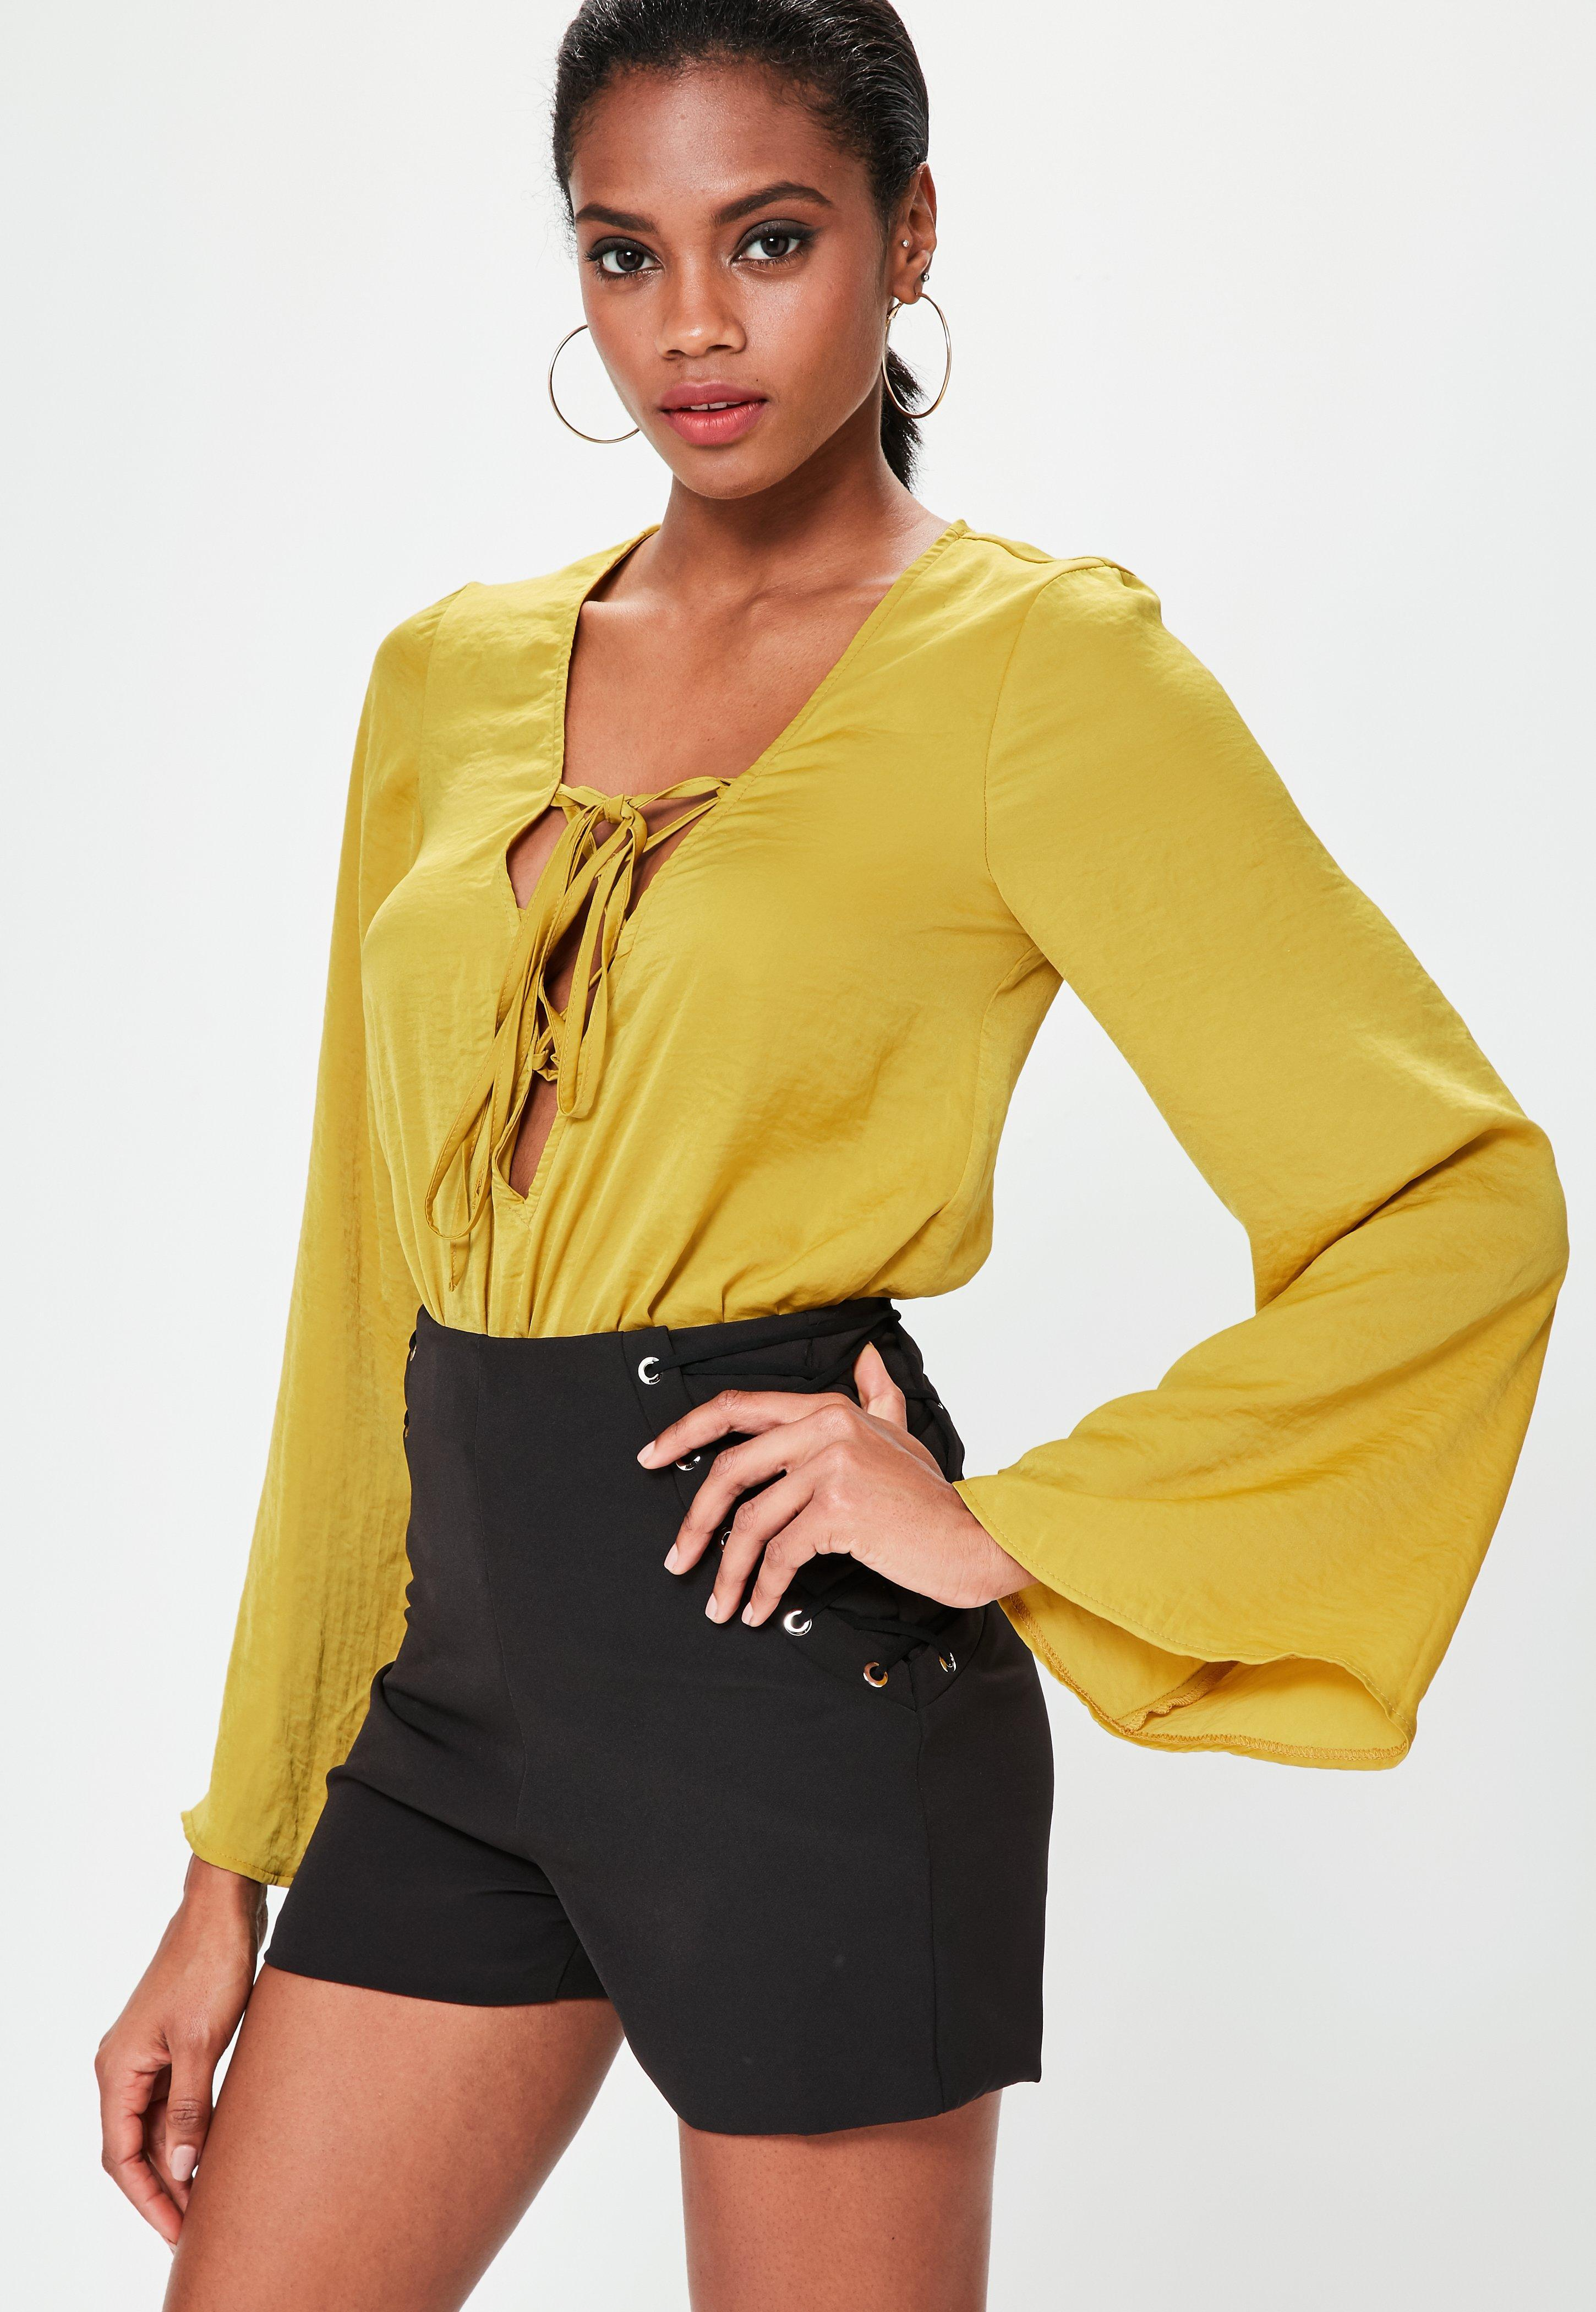 Missguided Yellow Lace Up Satin Bodysuit in Yellow - Lyst 2129687a8